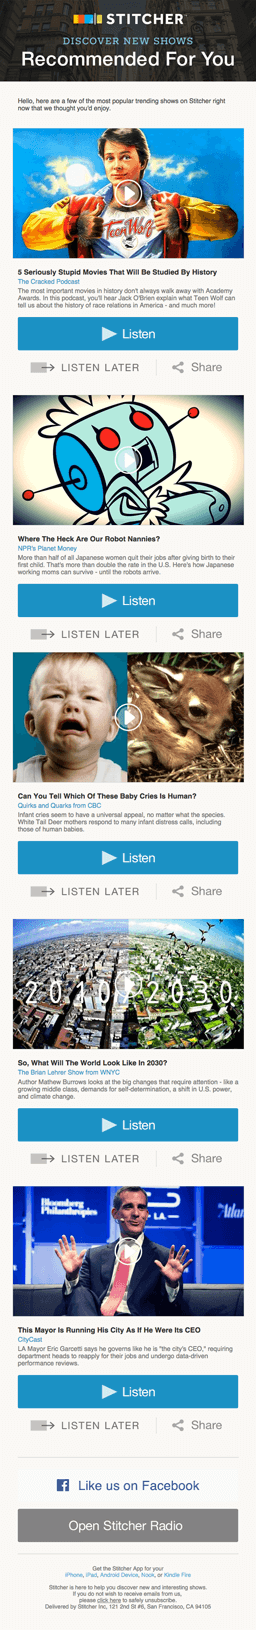 Email marketing campaign 'Recommended for You' by Stitcher